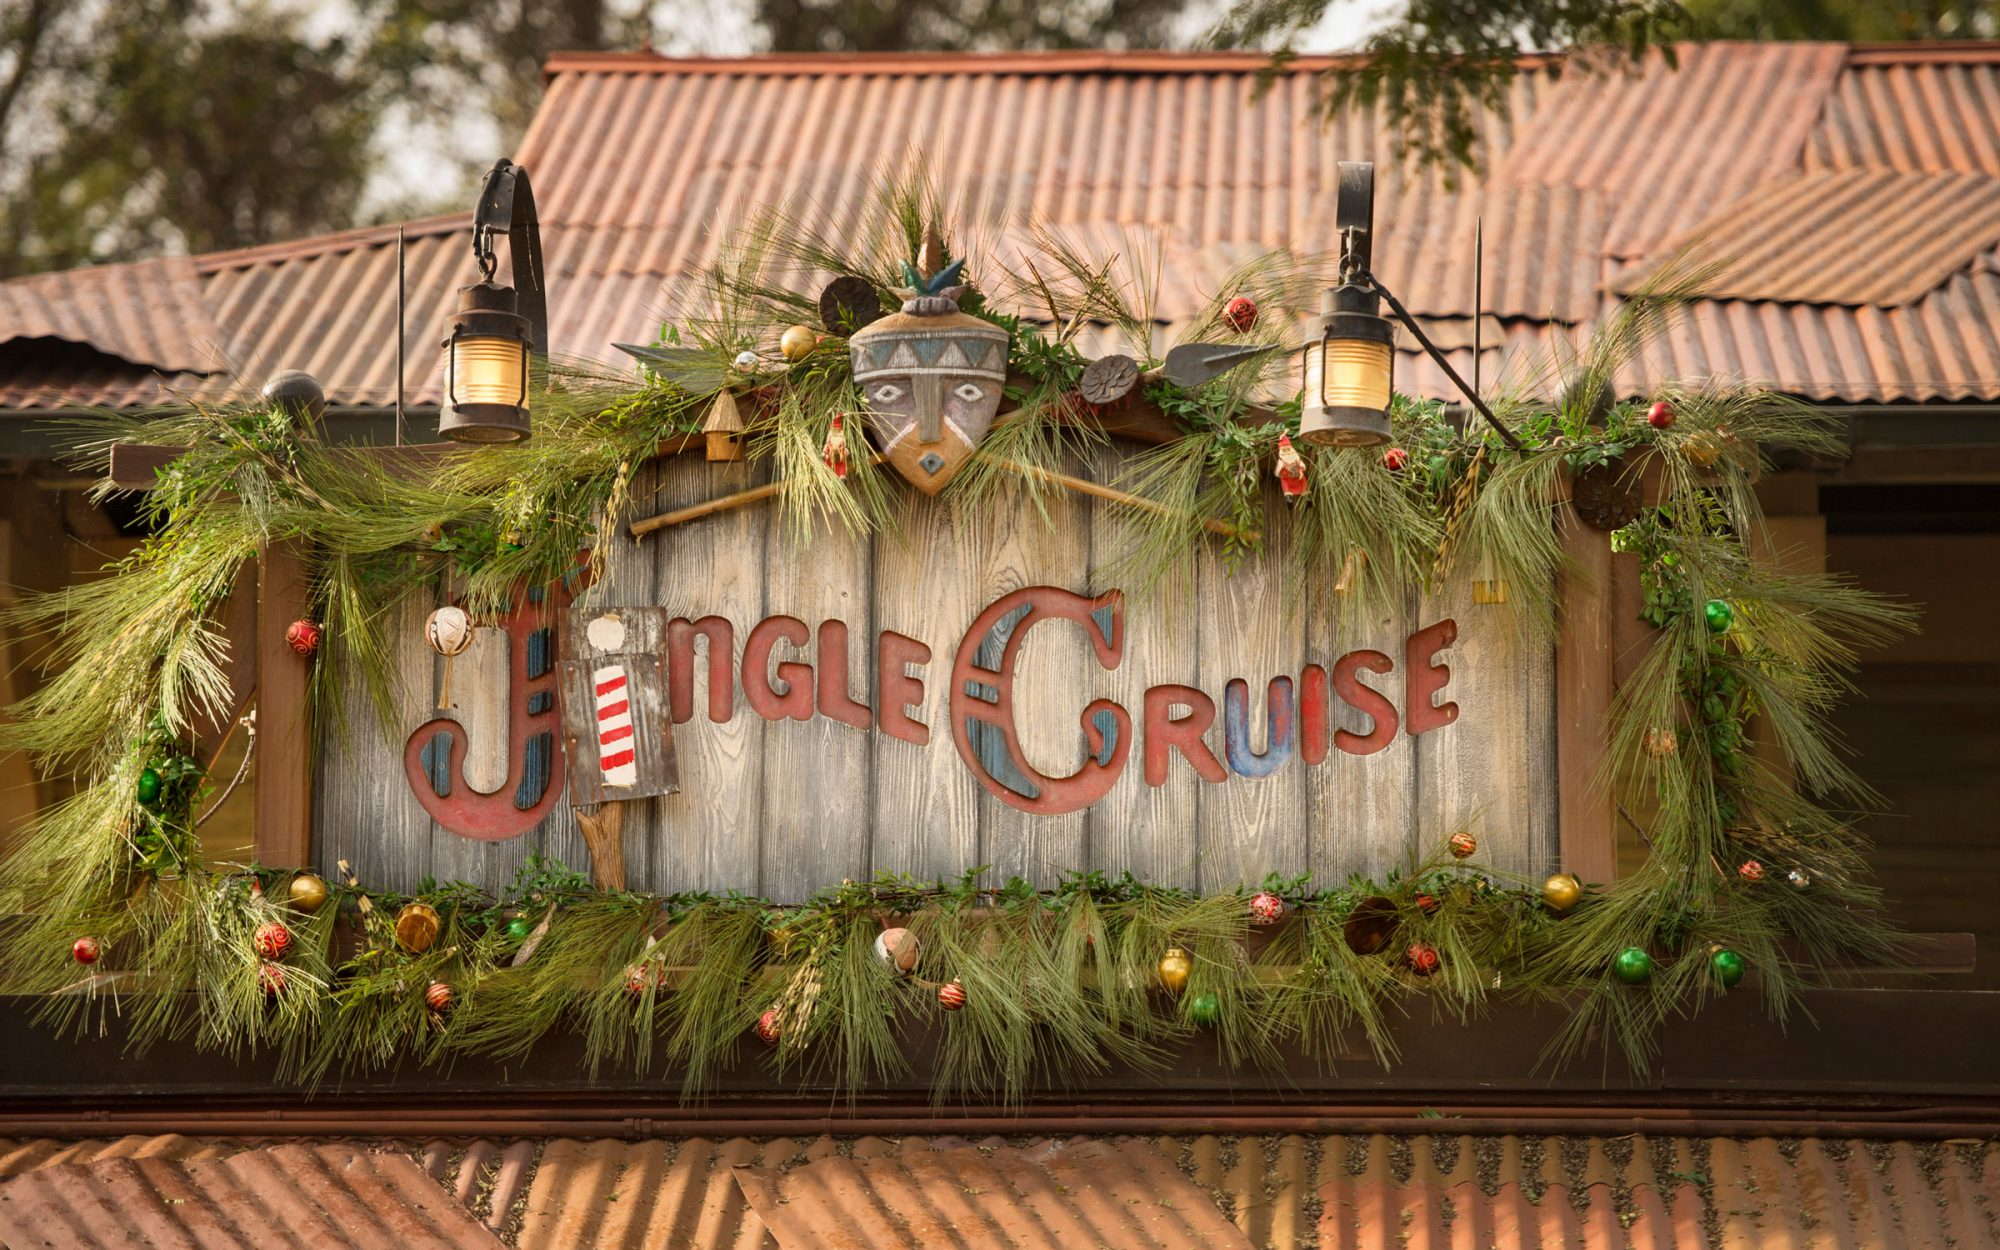 Ride the Jingle Cruise at the Magic Kingdom